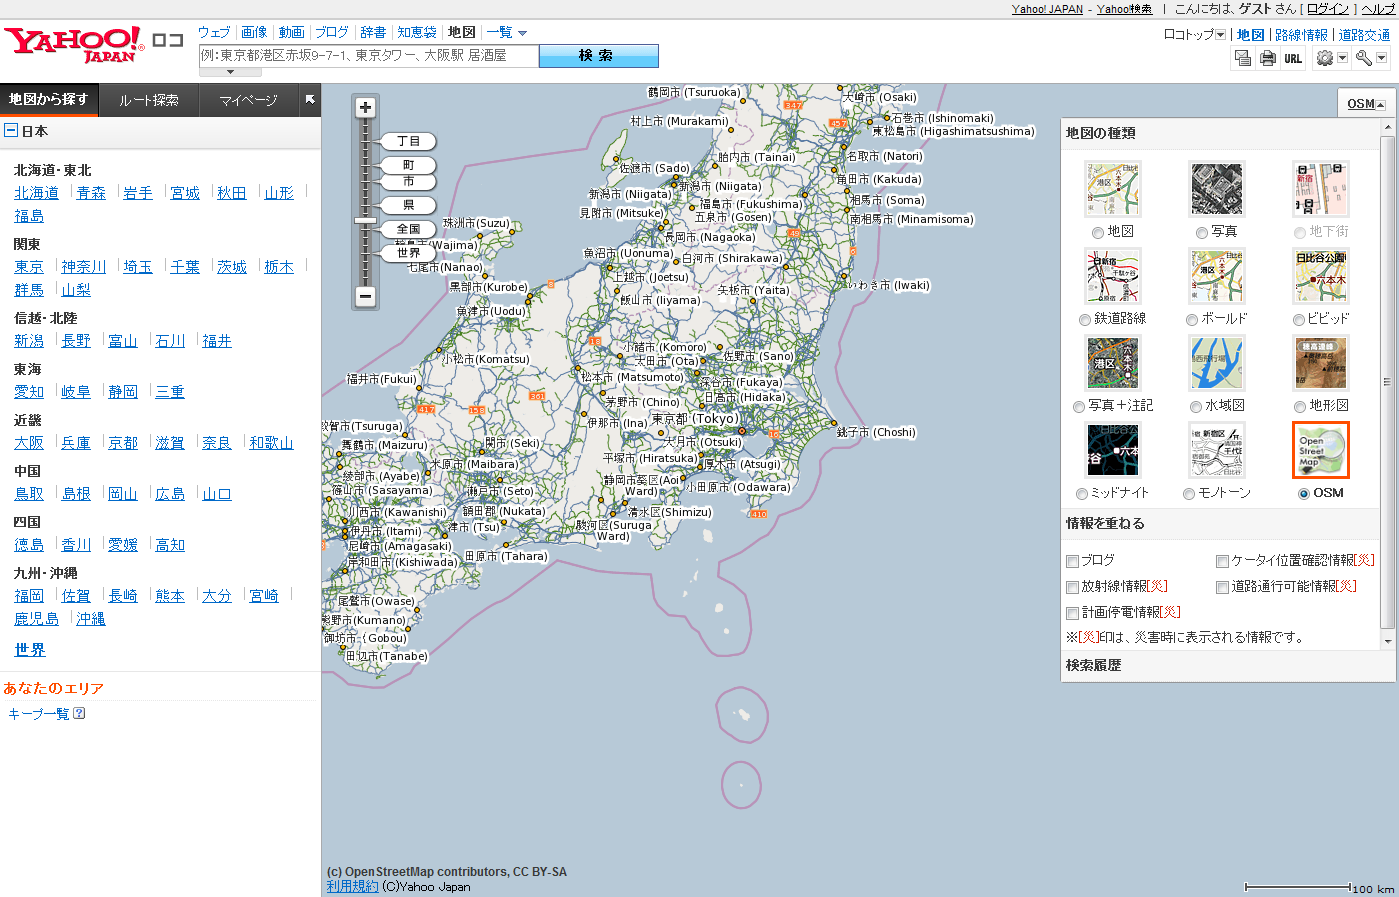 OpenStreetMap Layer Added To Yahoo JAPAN Local OpenStreetMap Blog - Japan map yahoo